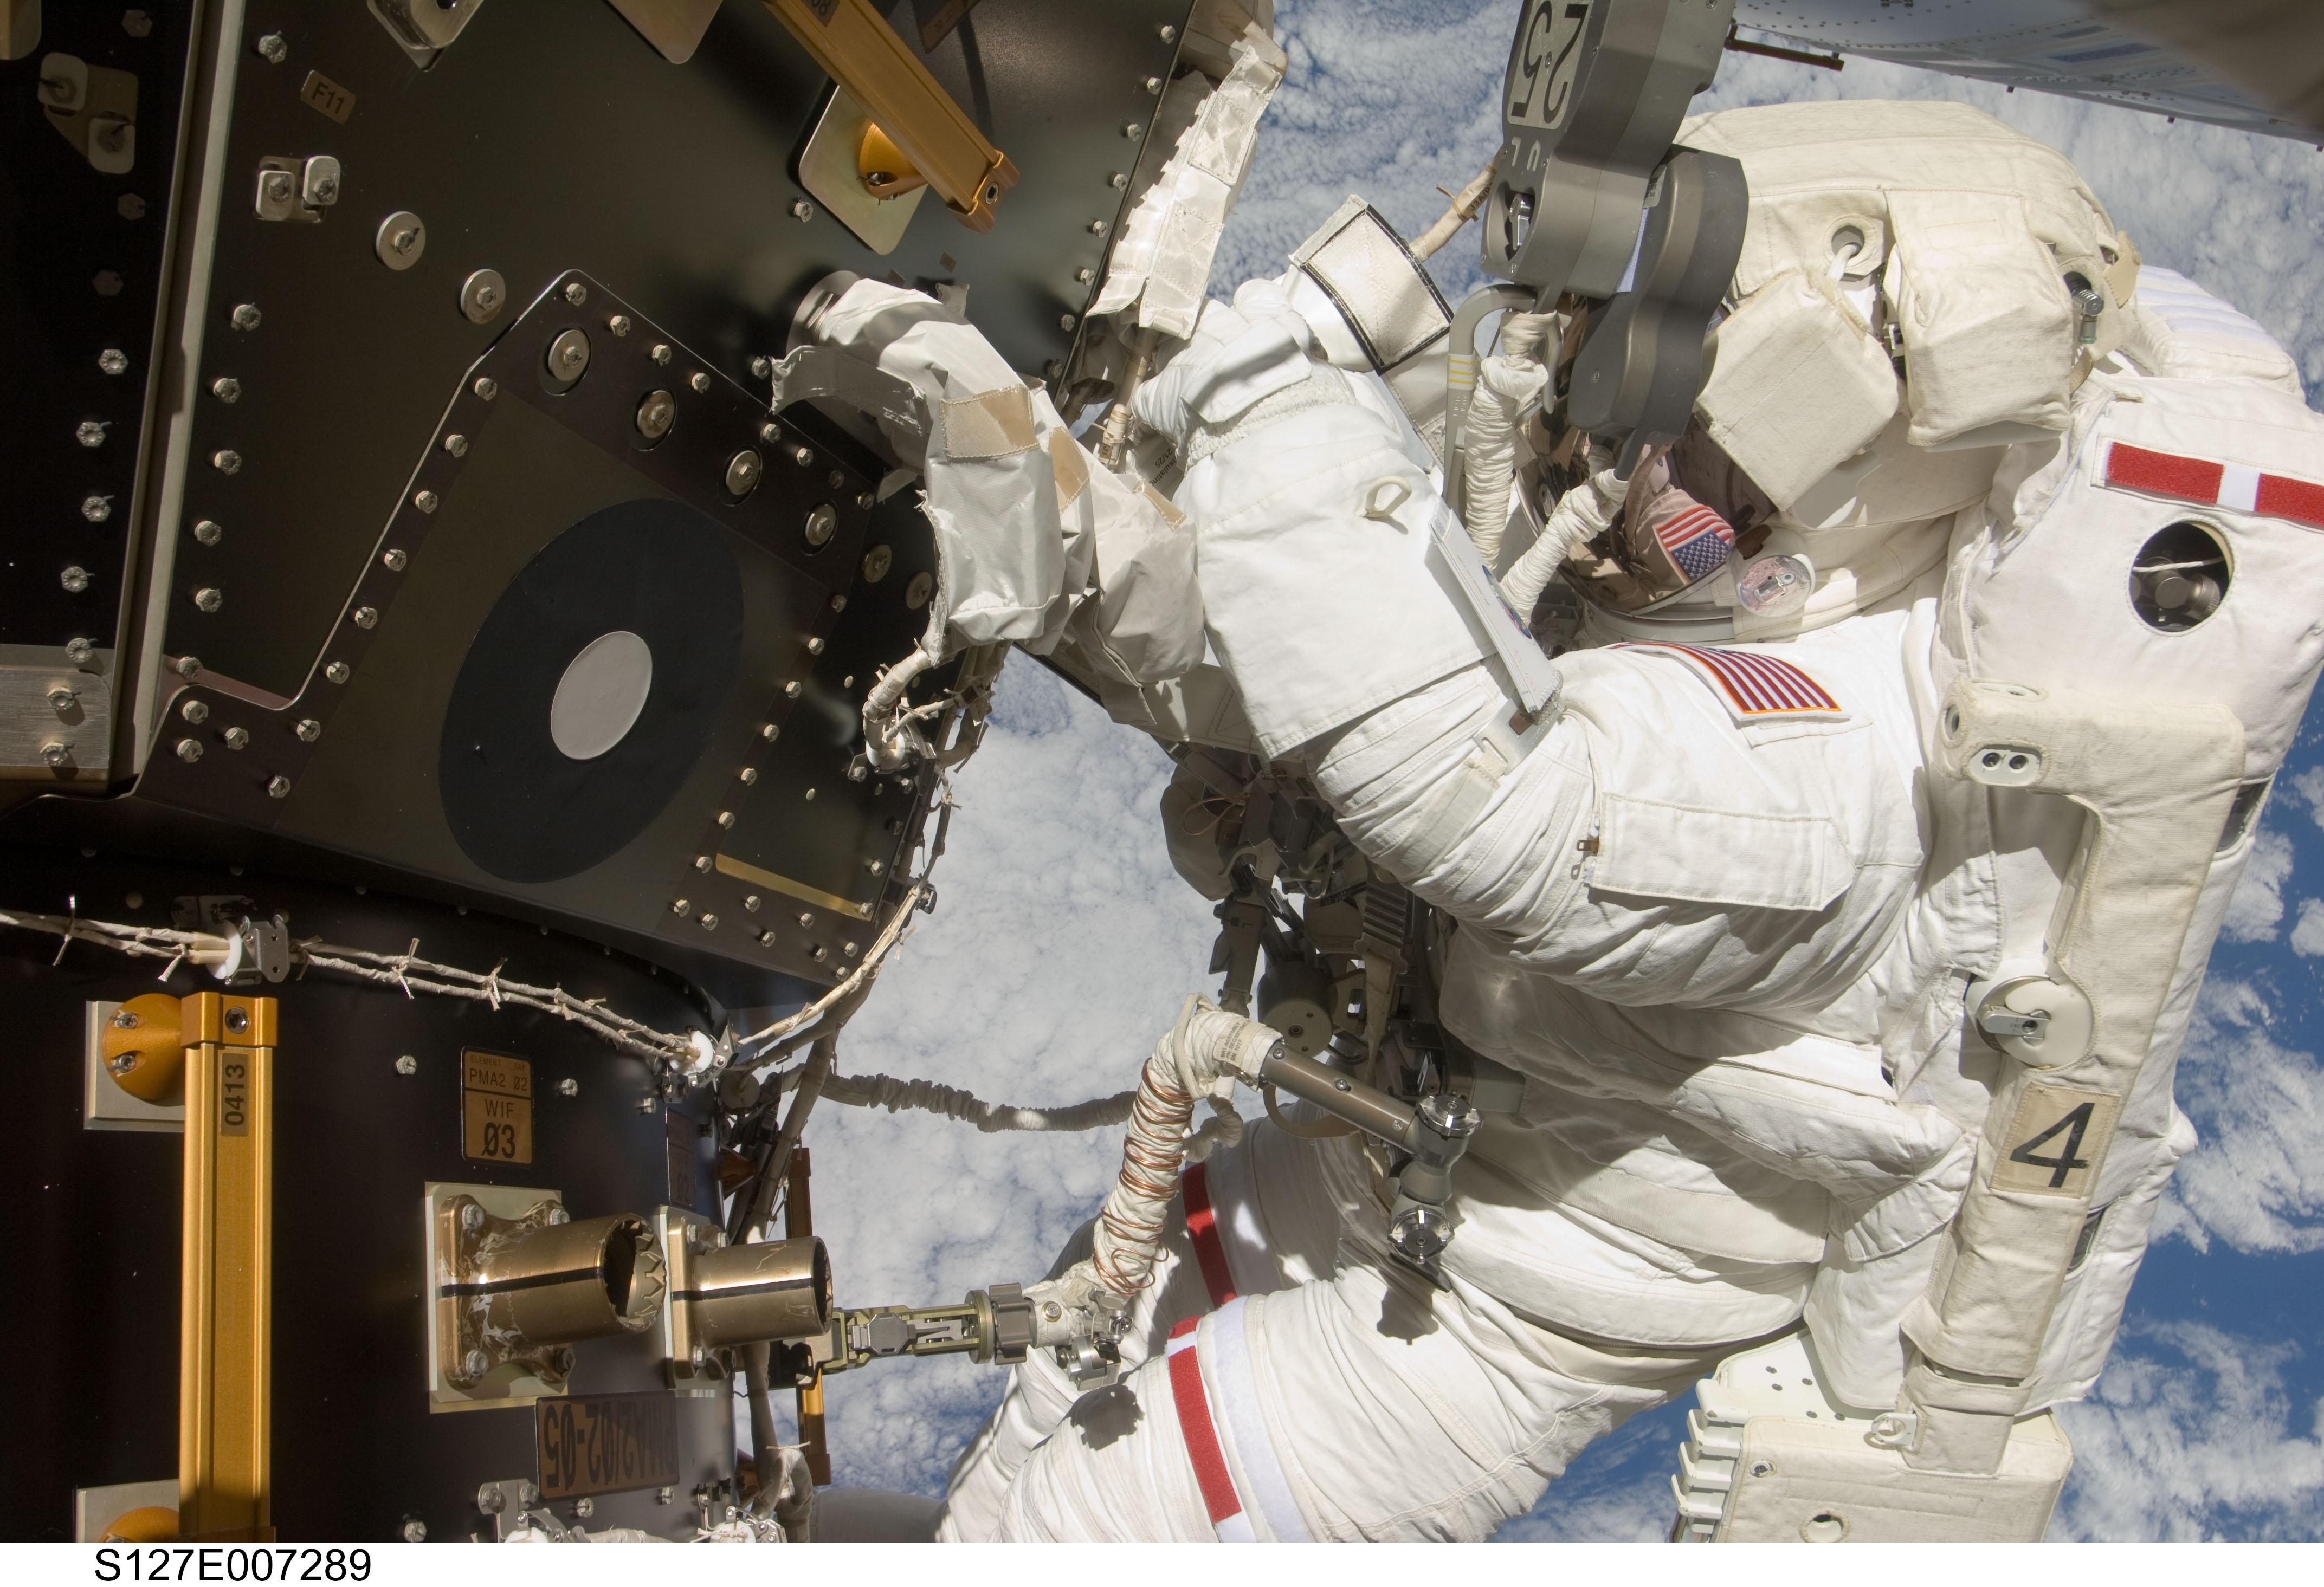 astronaut working in space - photo #38